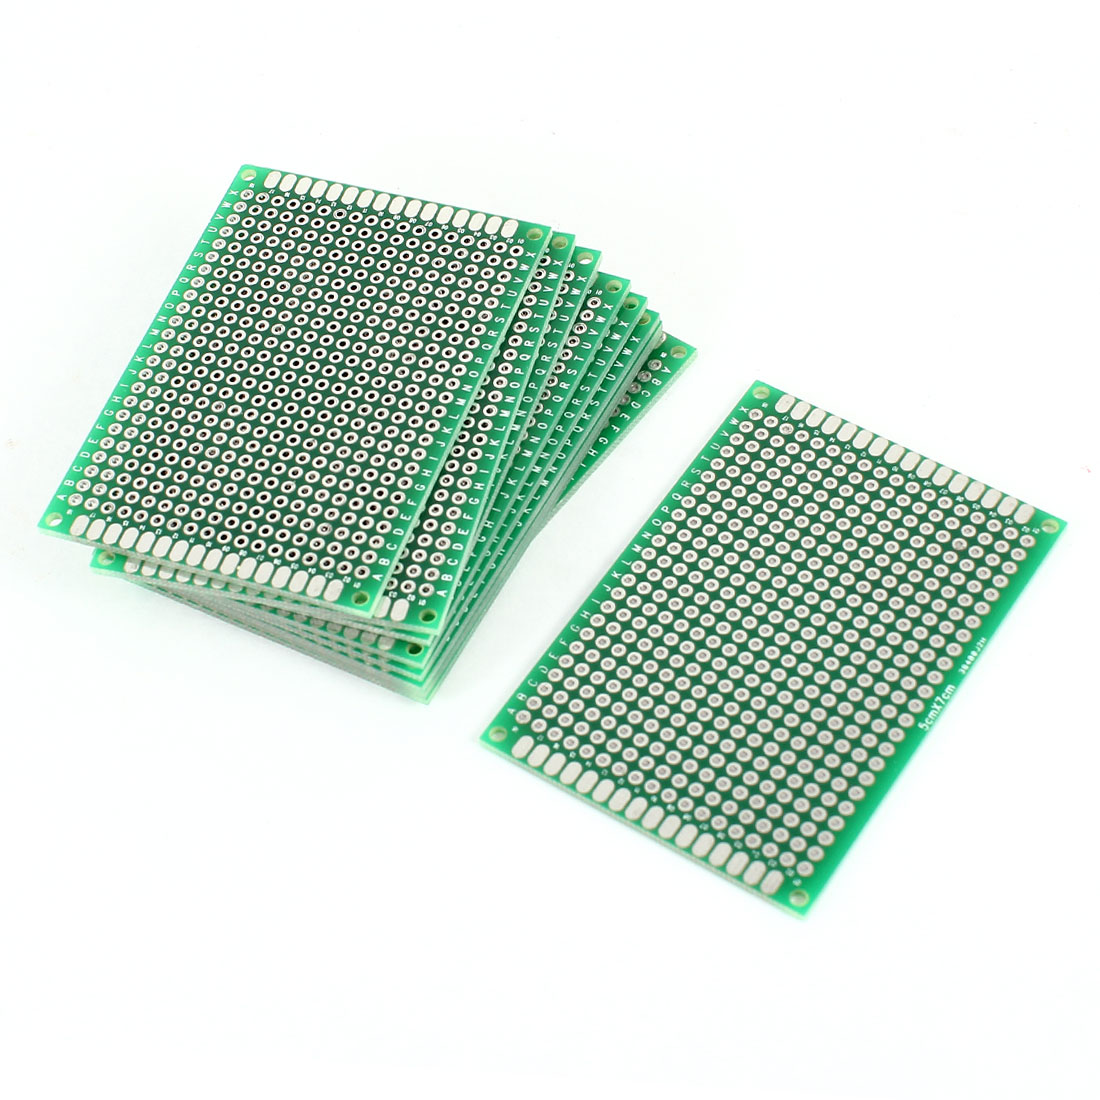 10 PCS 5cm x 7cm Double Sided Prototype Paper Tinned Universal PCB Print Circuit Board for DIY